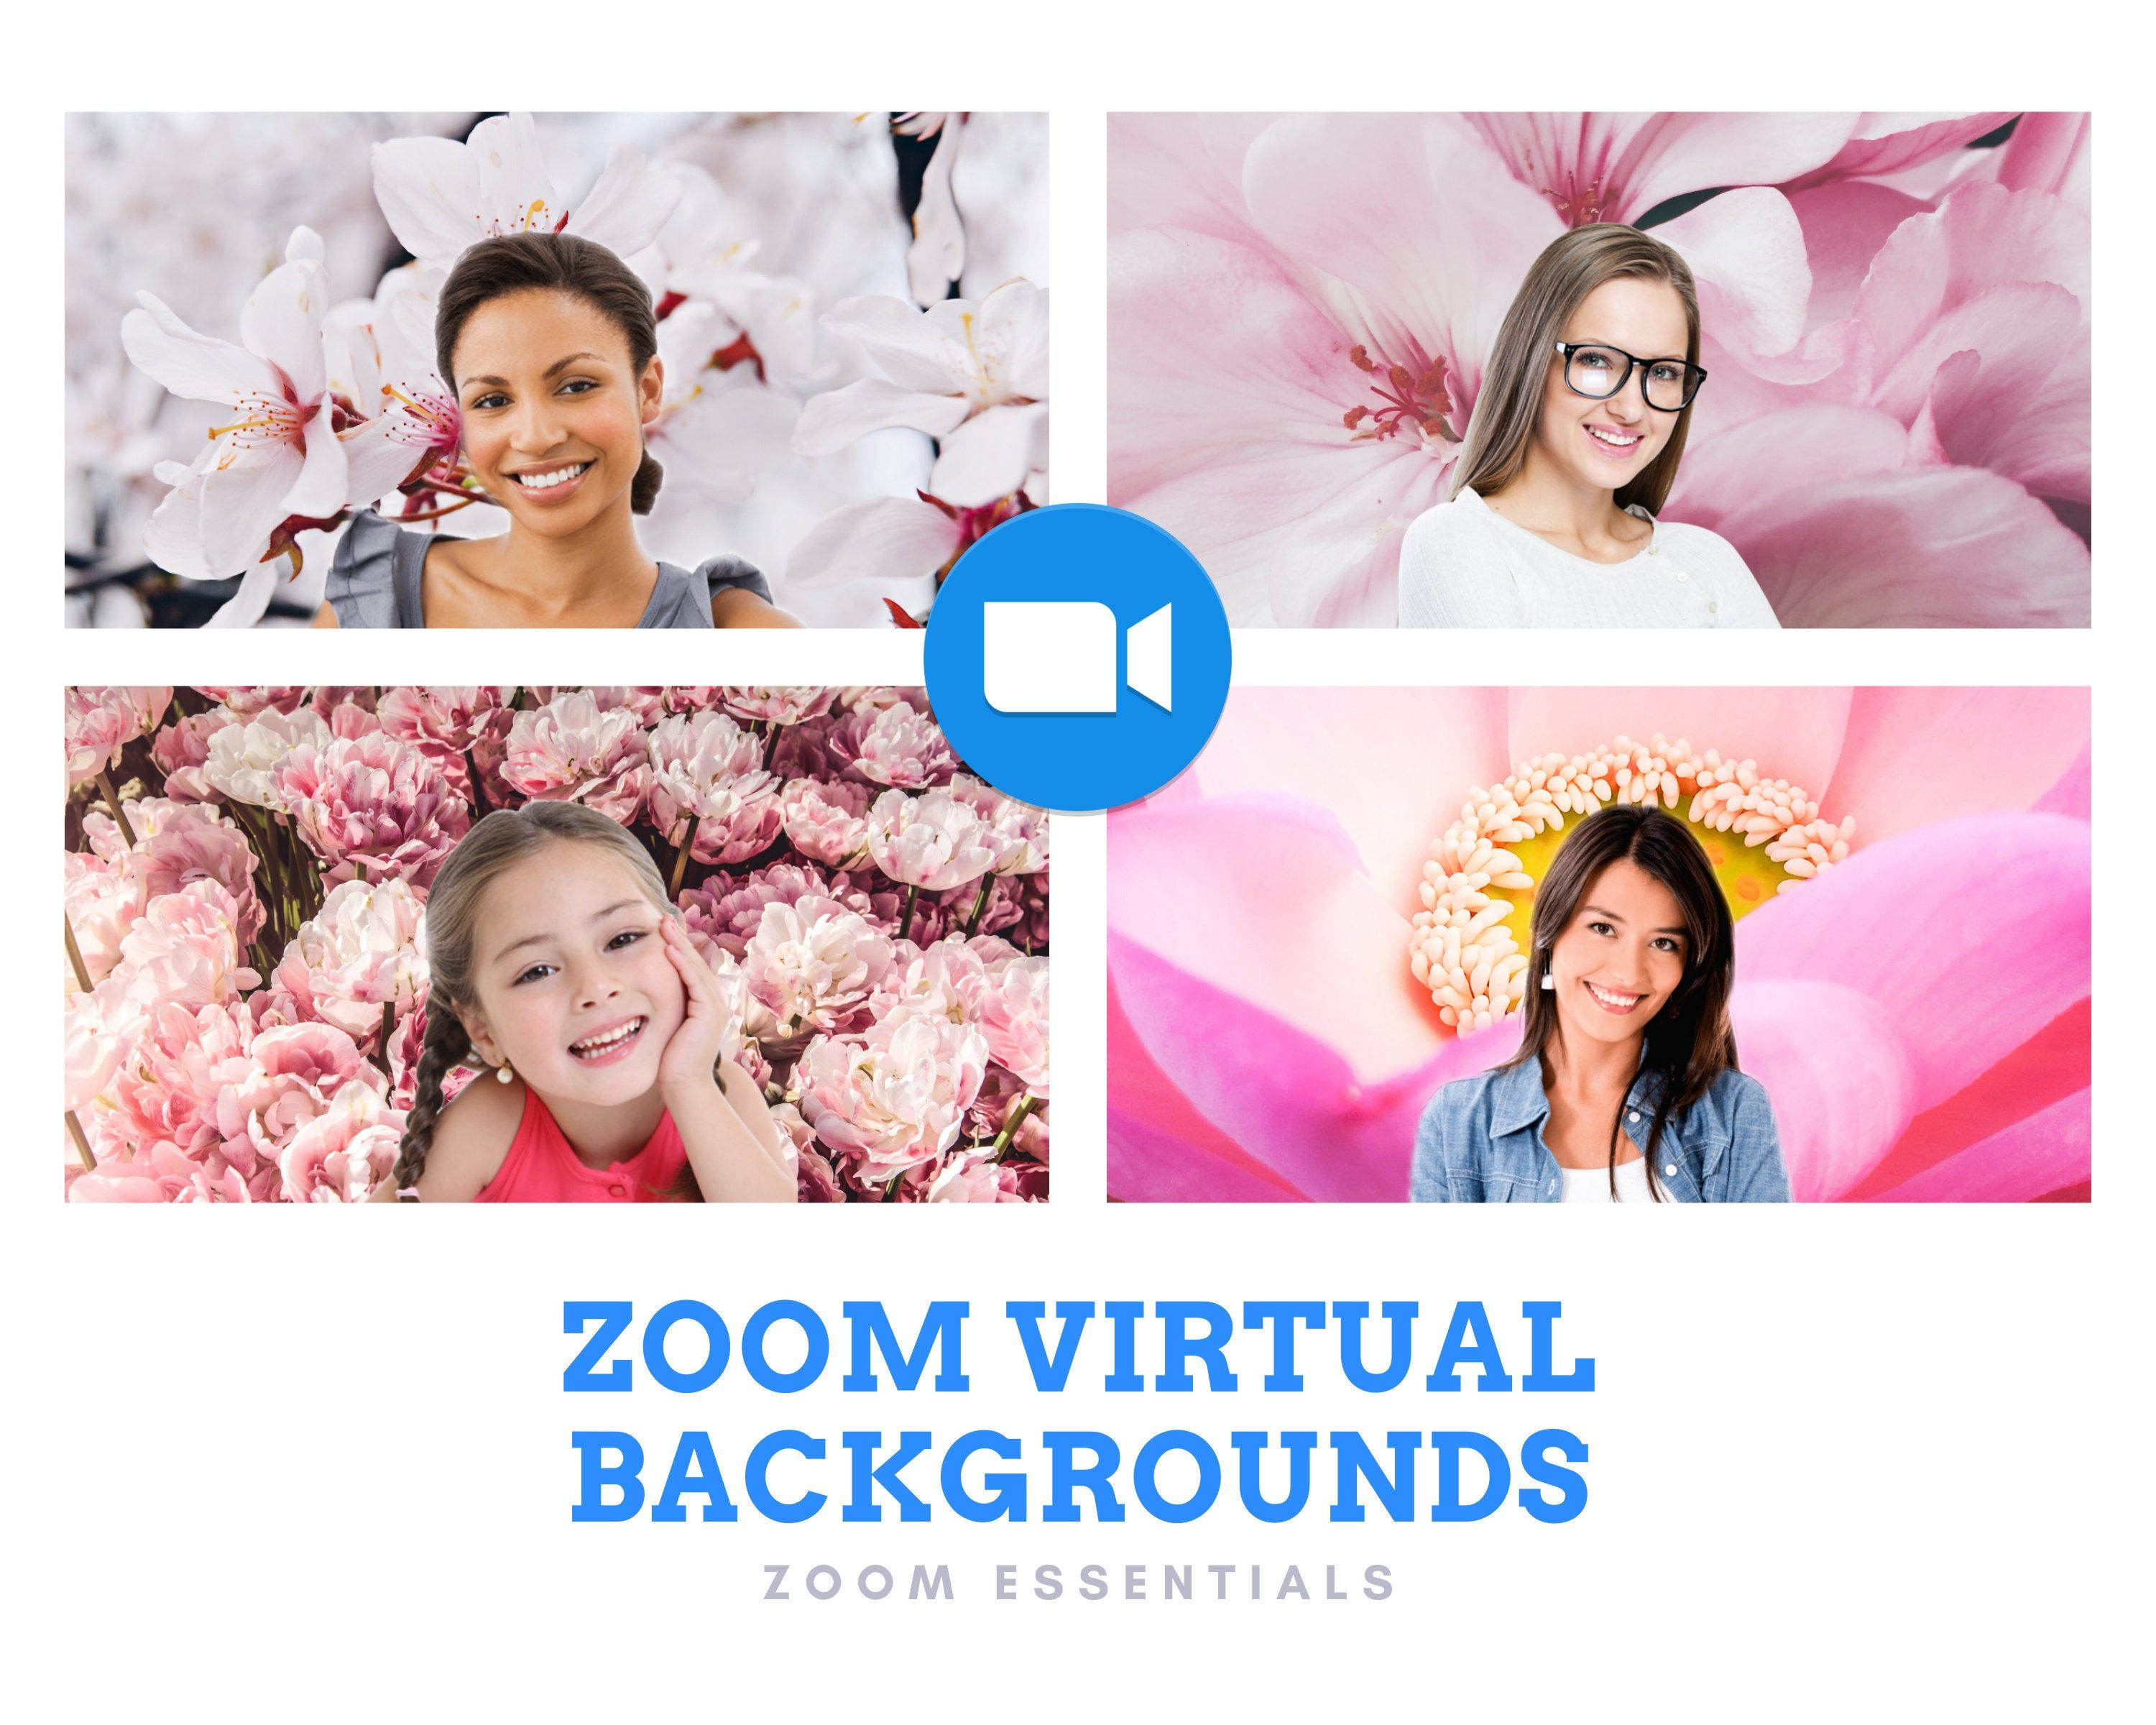 Zoom Virtual Background Pink Flowers Background Pink Virtual Backgrounds Wallpaper Zoom Meeting Flower wallpaper zoom zoom backgrounds